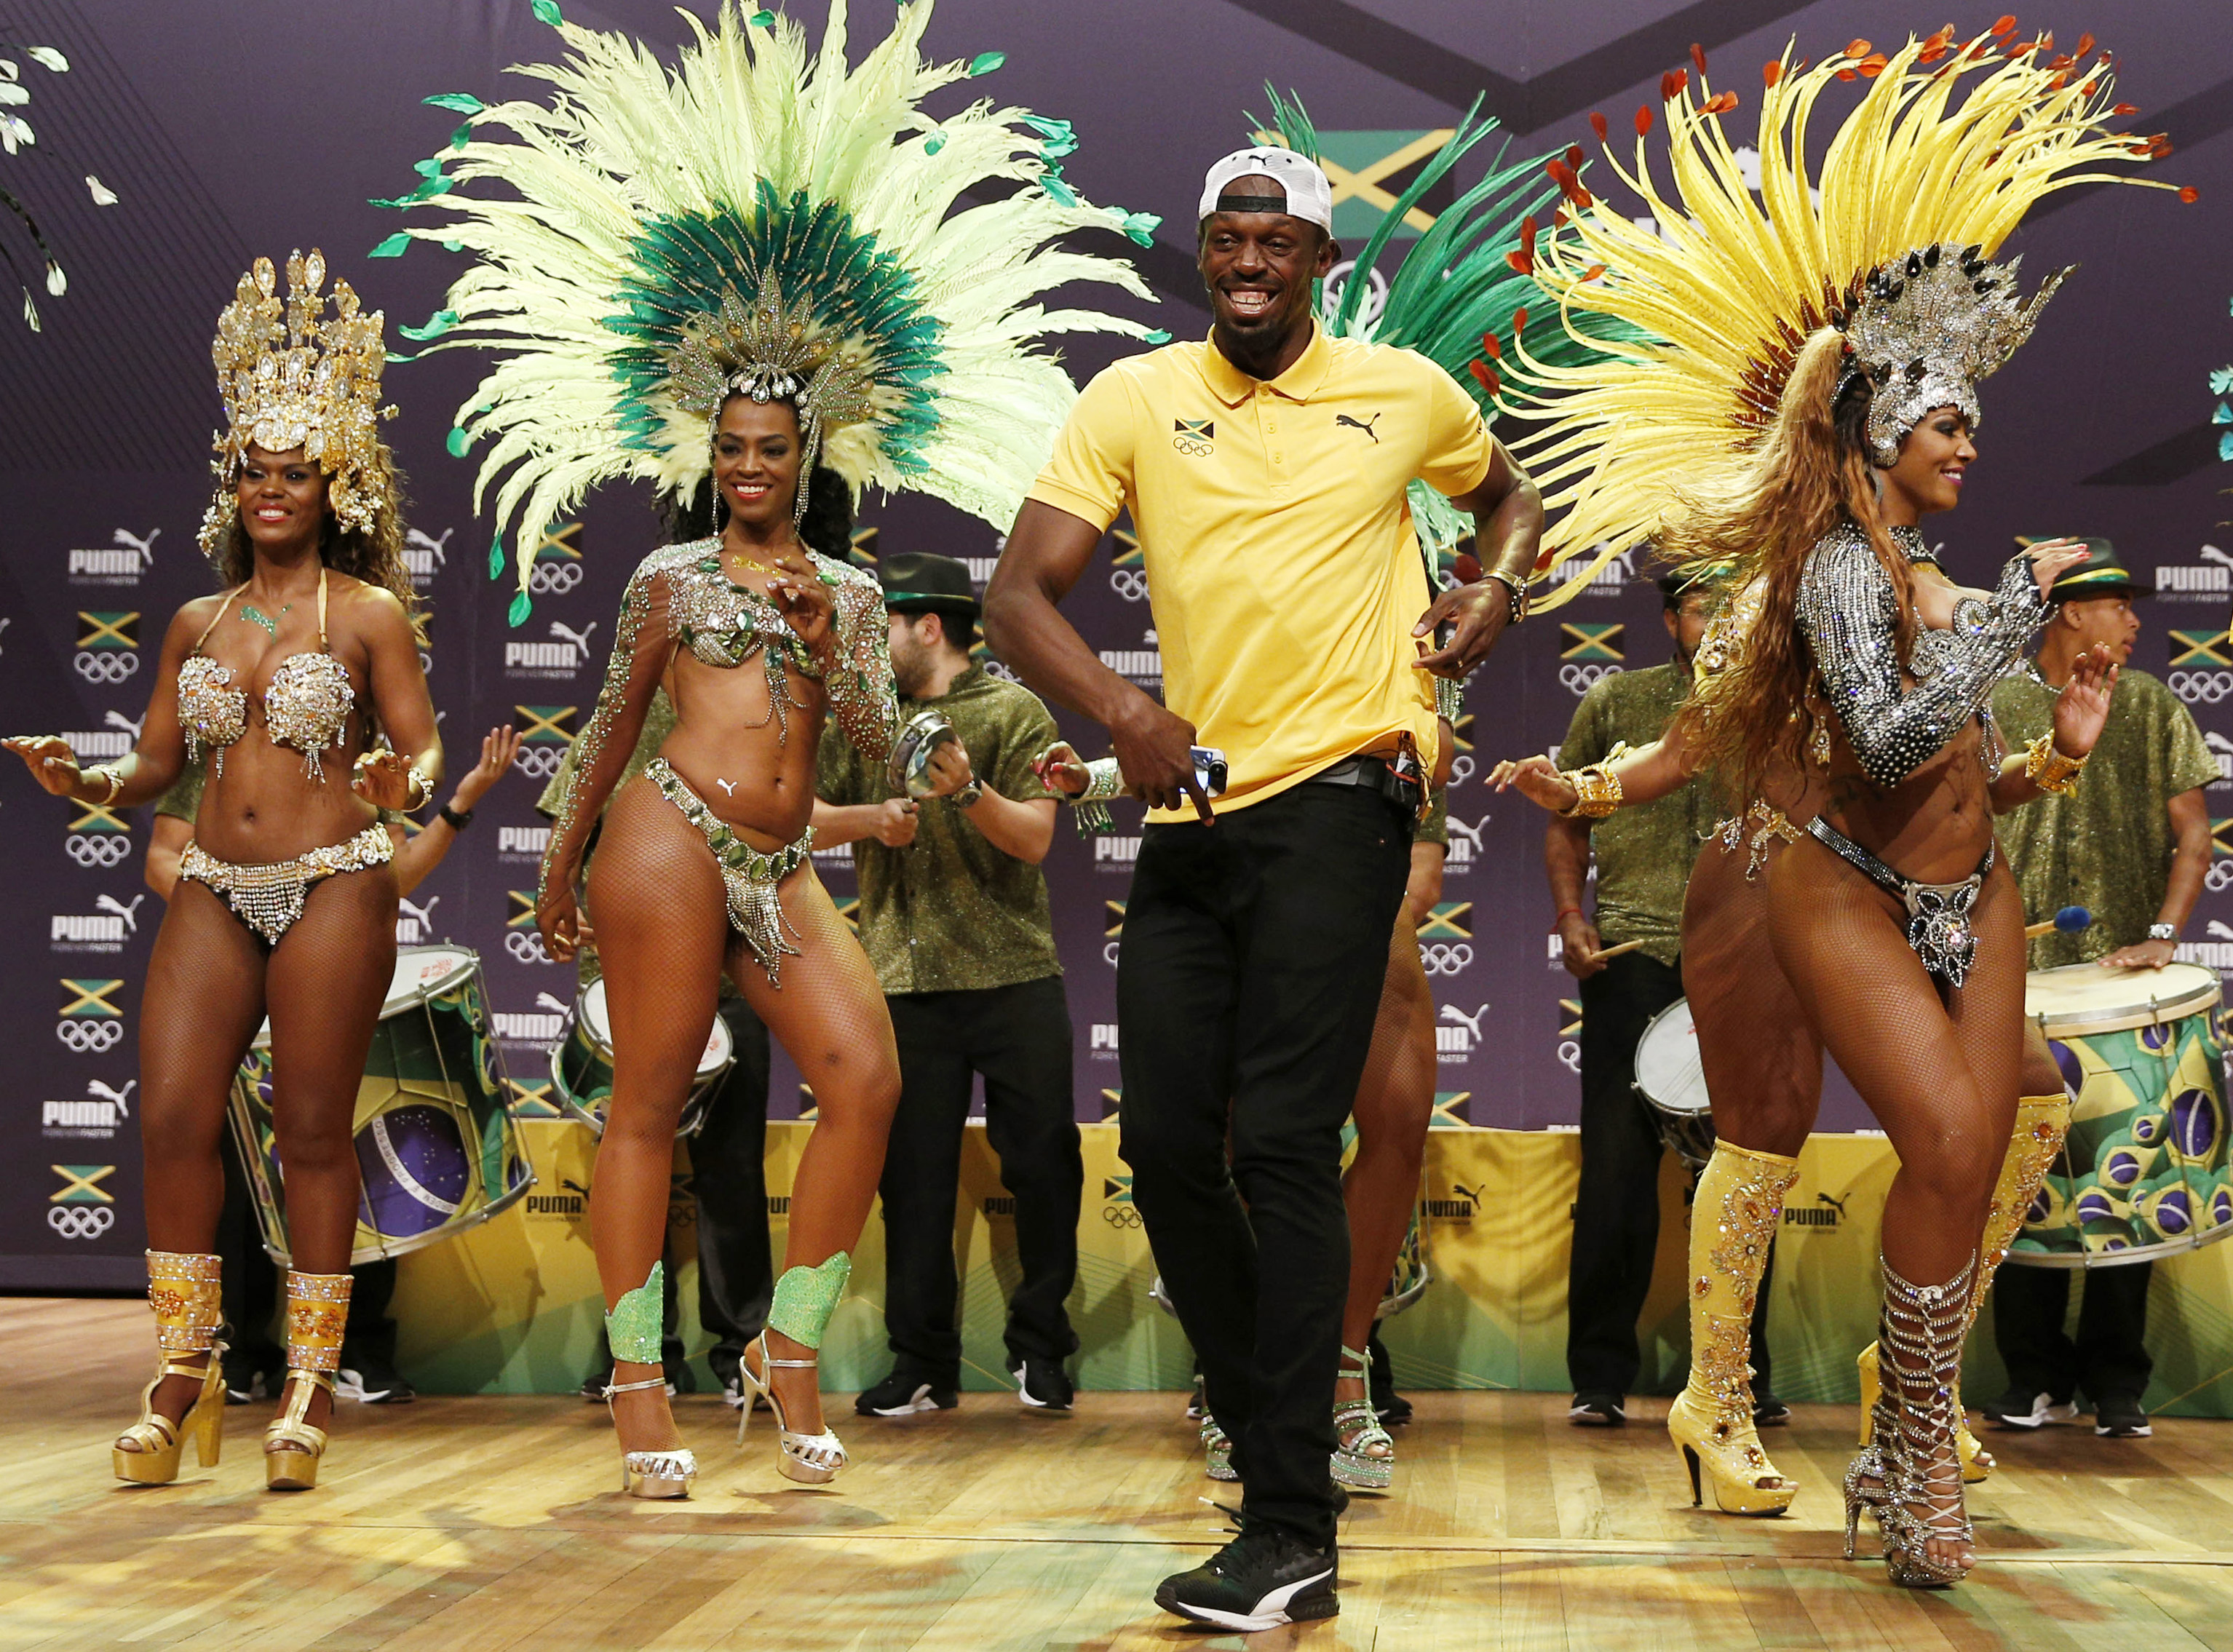 Usain Bolt dancing in Rio